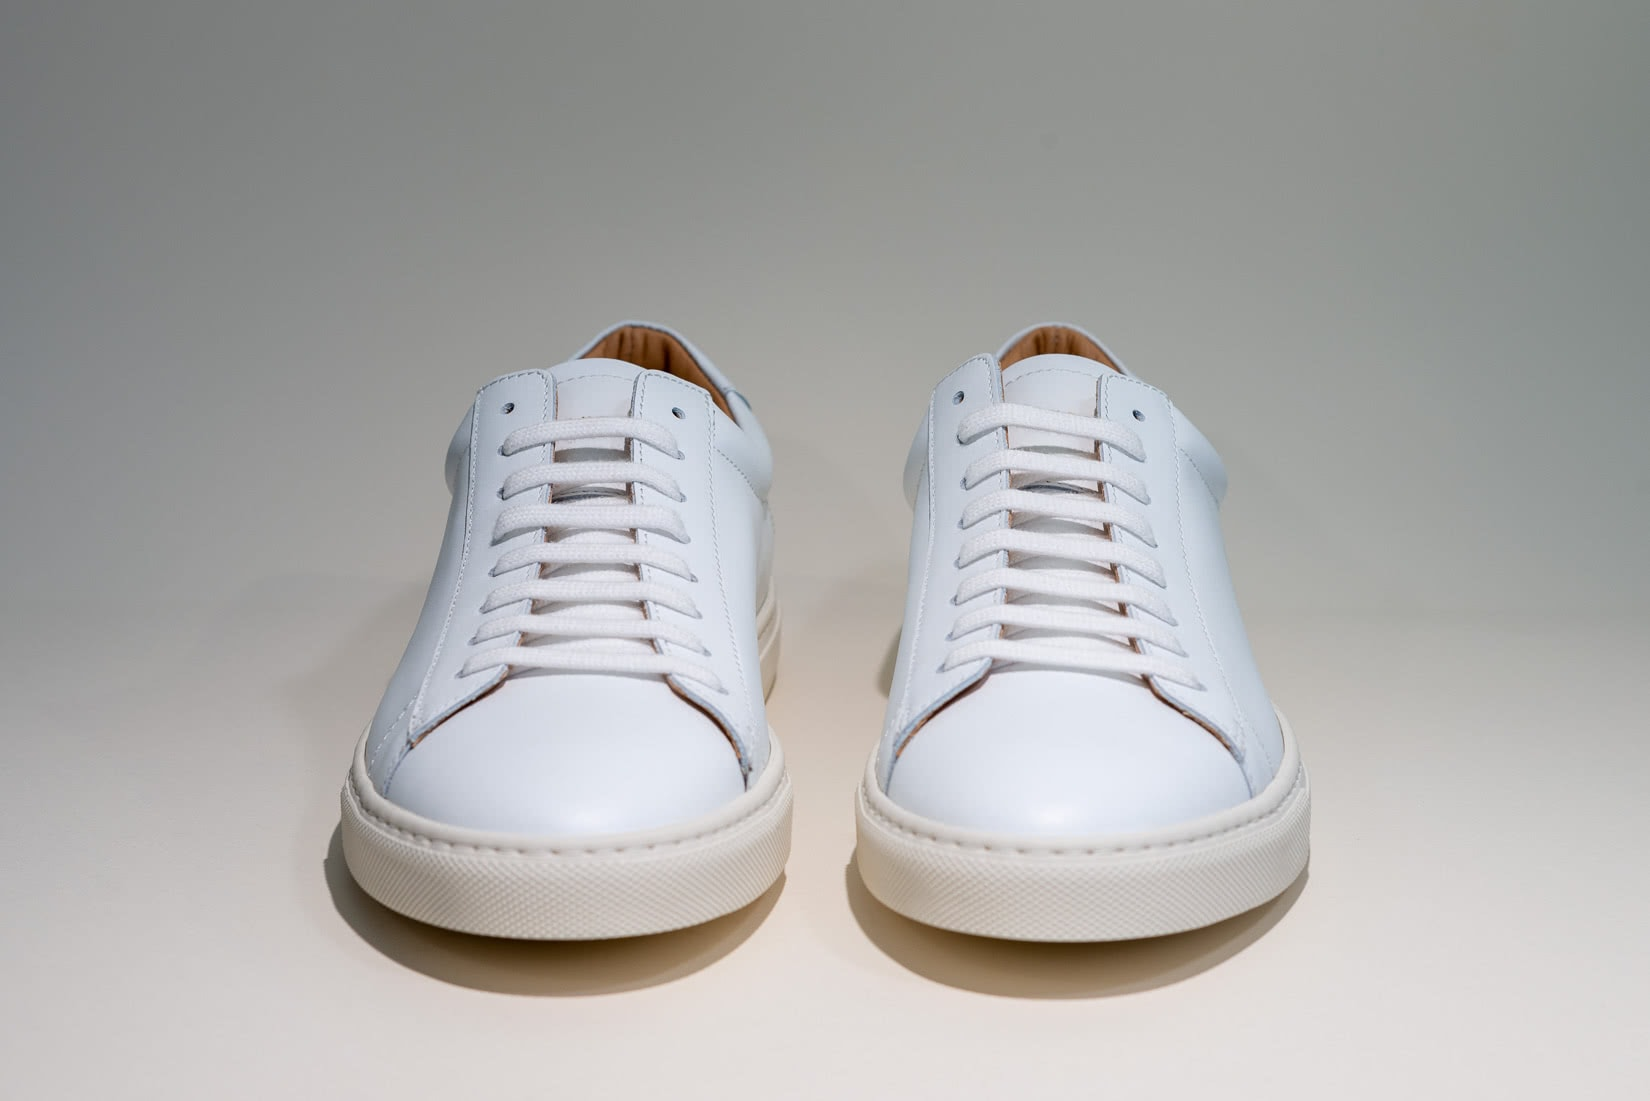 oliver cabell review low 1 sneakers front - Luxe Digital